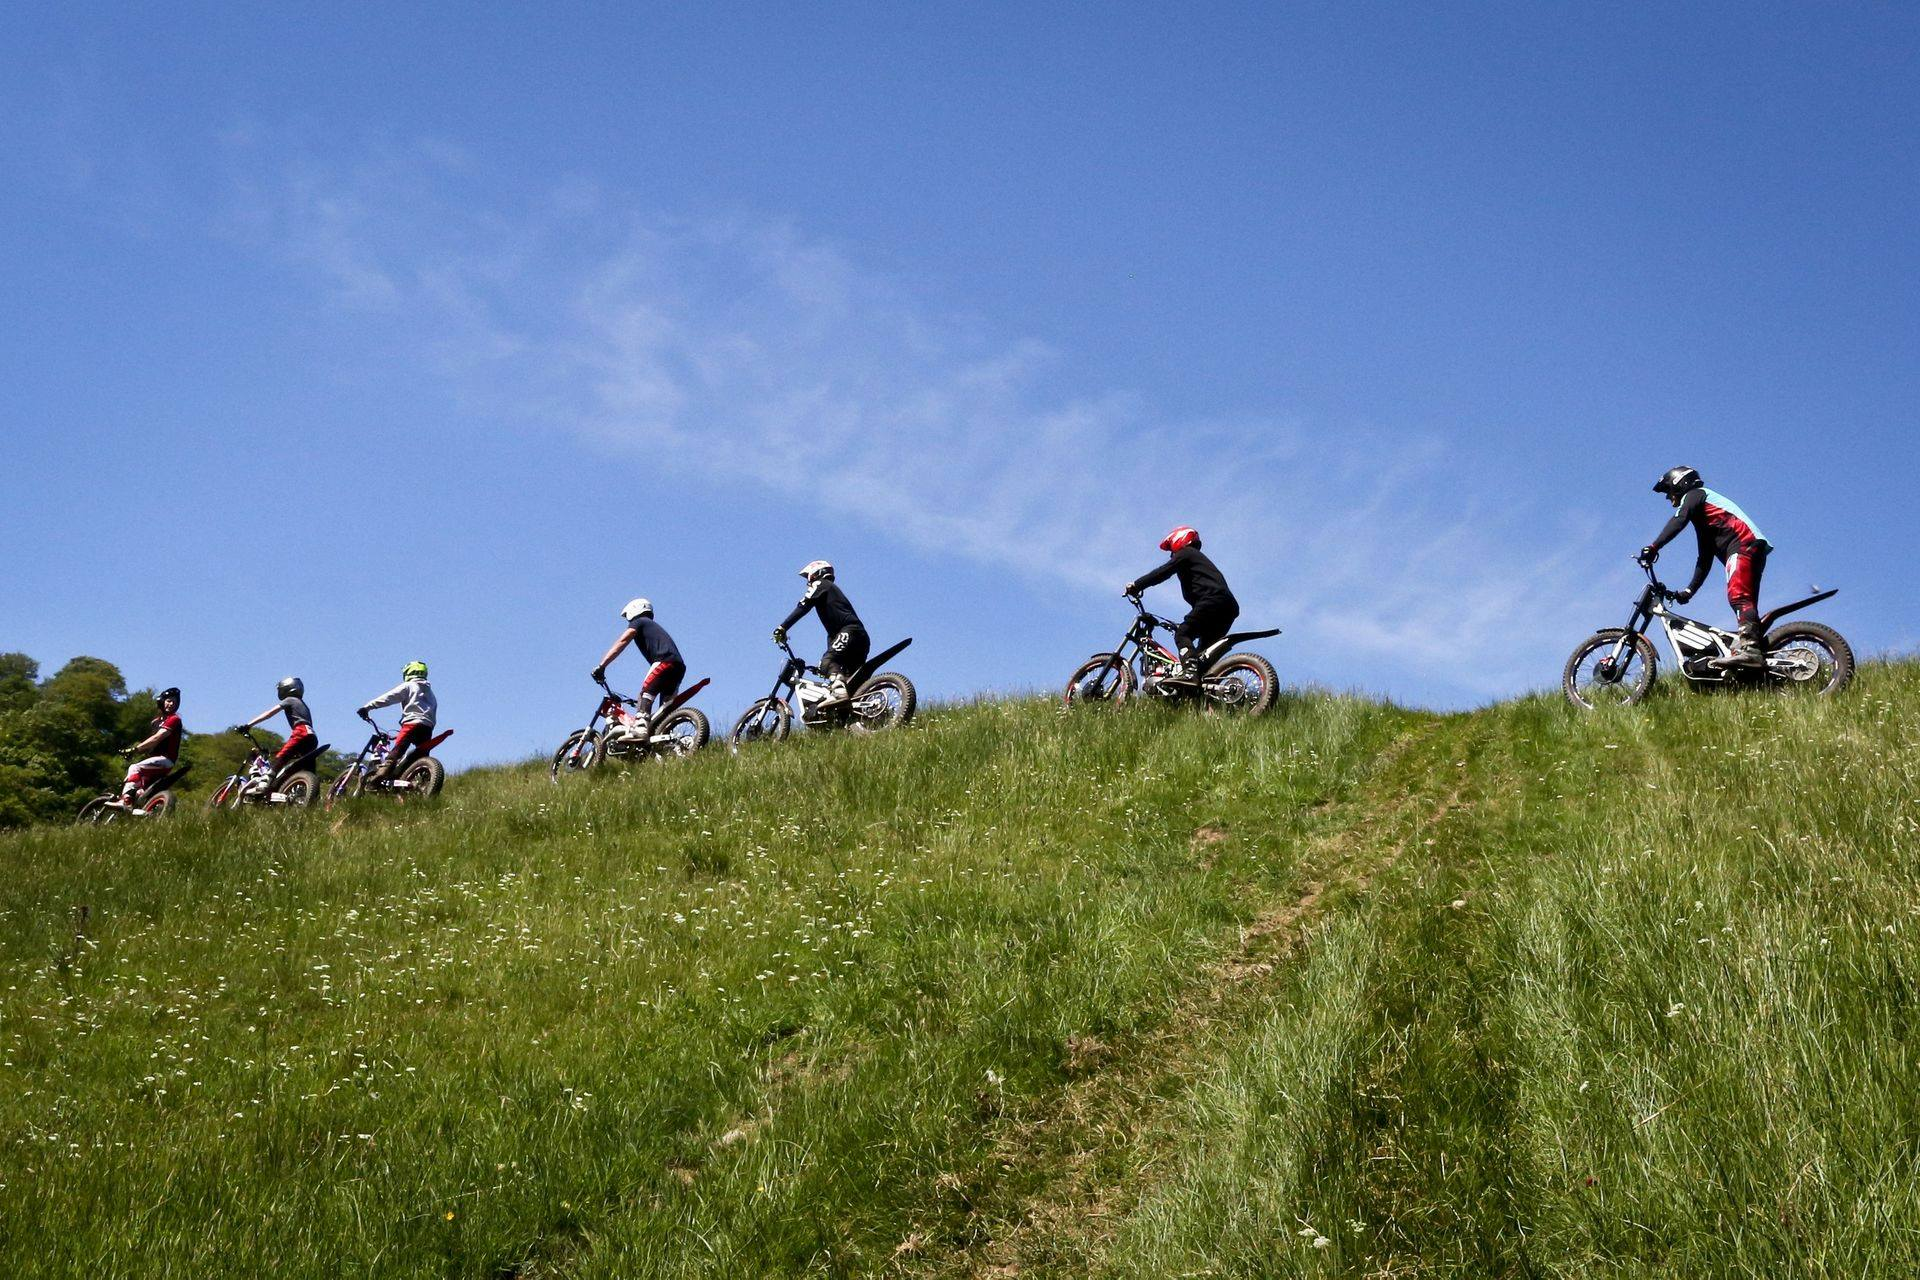 Motorcycle Trials Full-day outdoor adventure